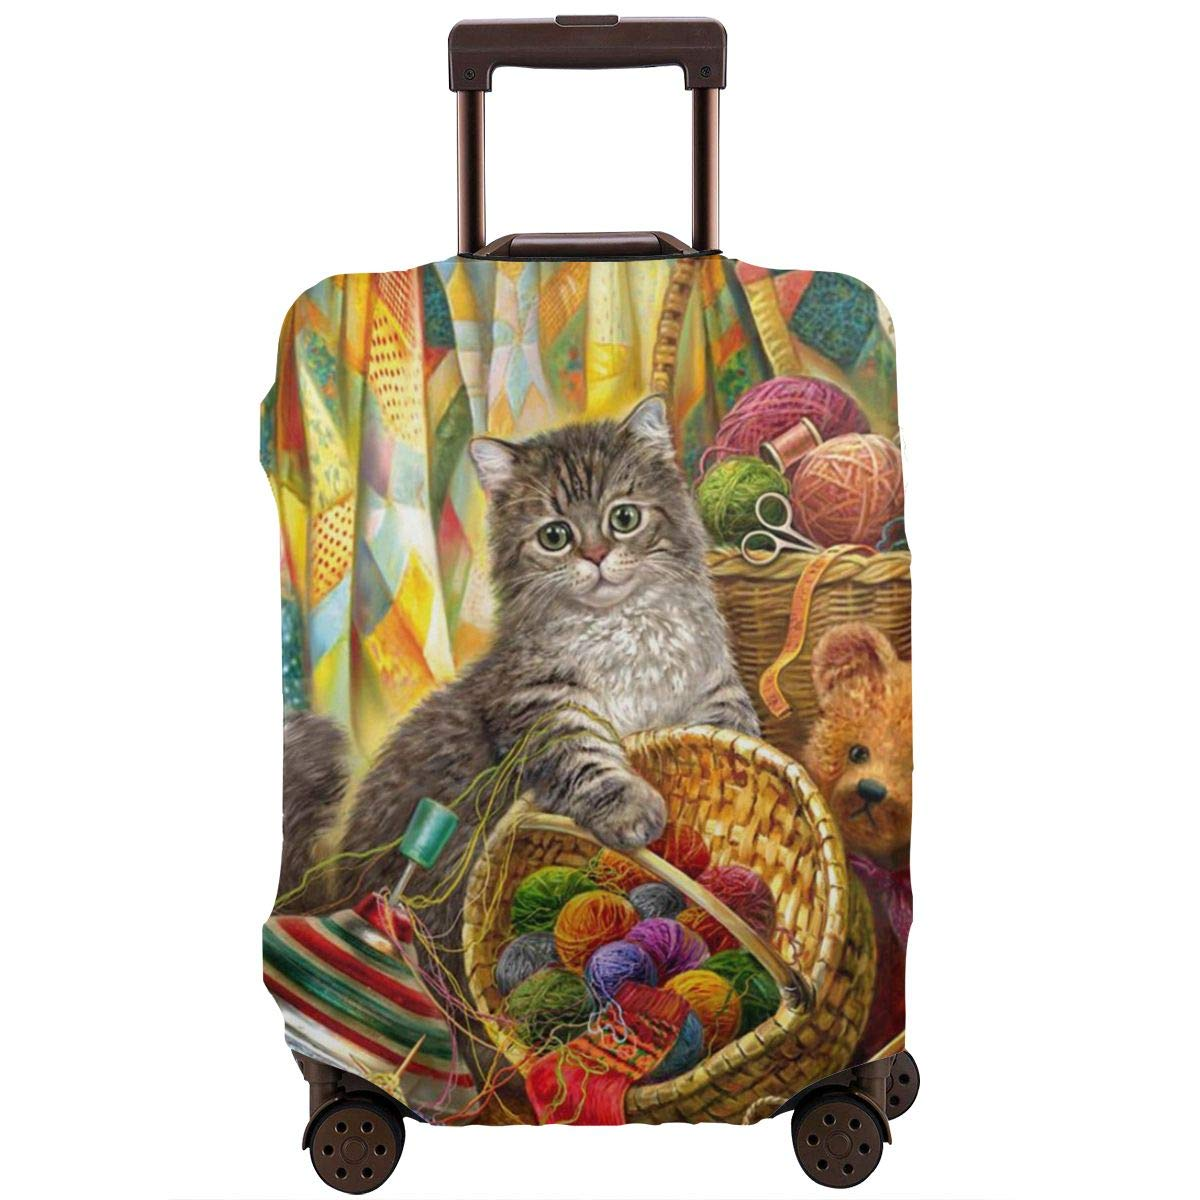 Luggage Cover Cute Cat Knitting Yarn Funny Cats Bear Toy Protective Travel Trunk Case Elastic Luggage Suitcase Protector Cover